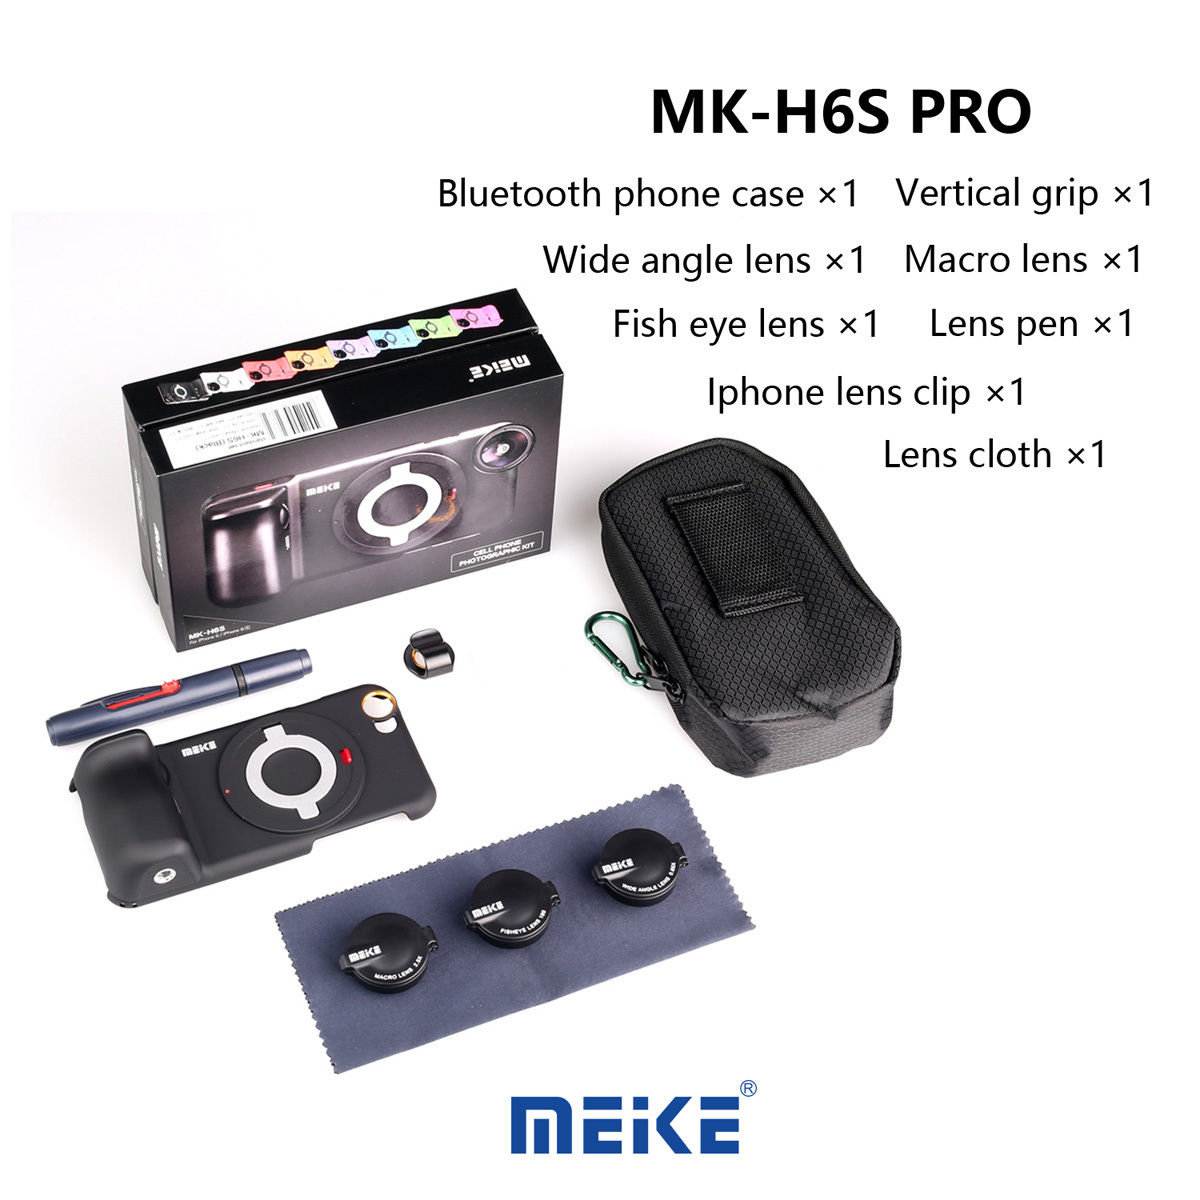 MK-H6S Pro 3in1 Bluetooth phone wide angle lens+fisheye lens+macro lens+case for iphone 6/6s Cell phone Sony ILCE-QX1 pixco camera lens kit ip hone case selfie stick wide angle lens fisheye macro lens handheld stable ip hone remote shutte for i6